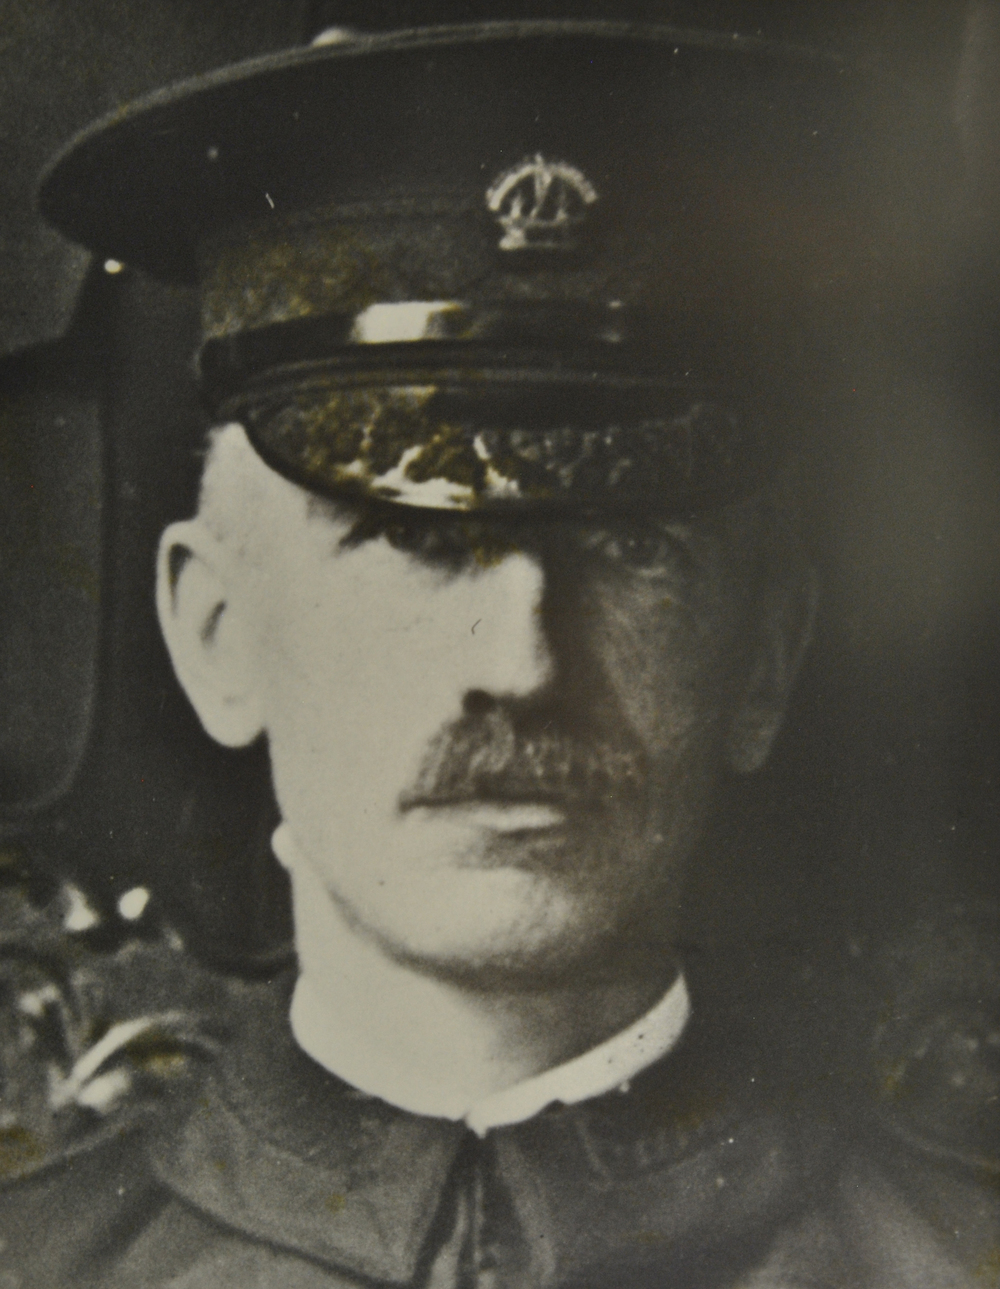 Chief Newhall, 1921-1944